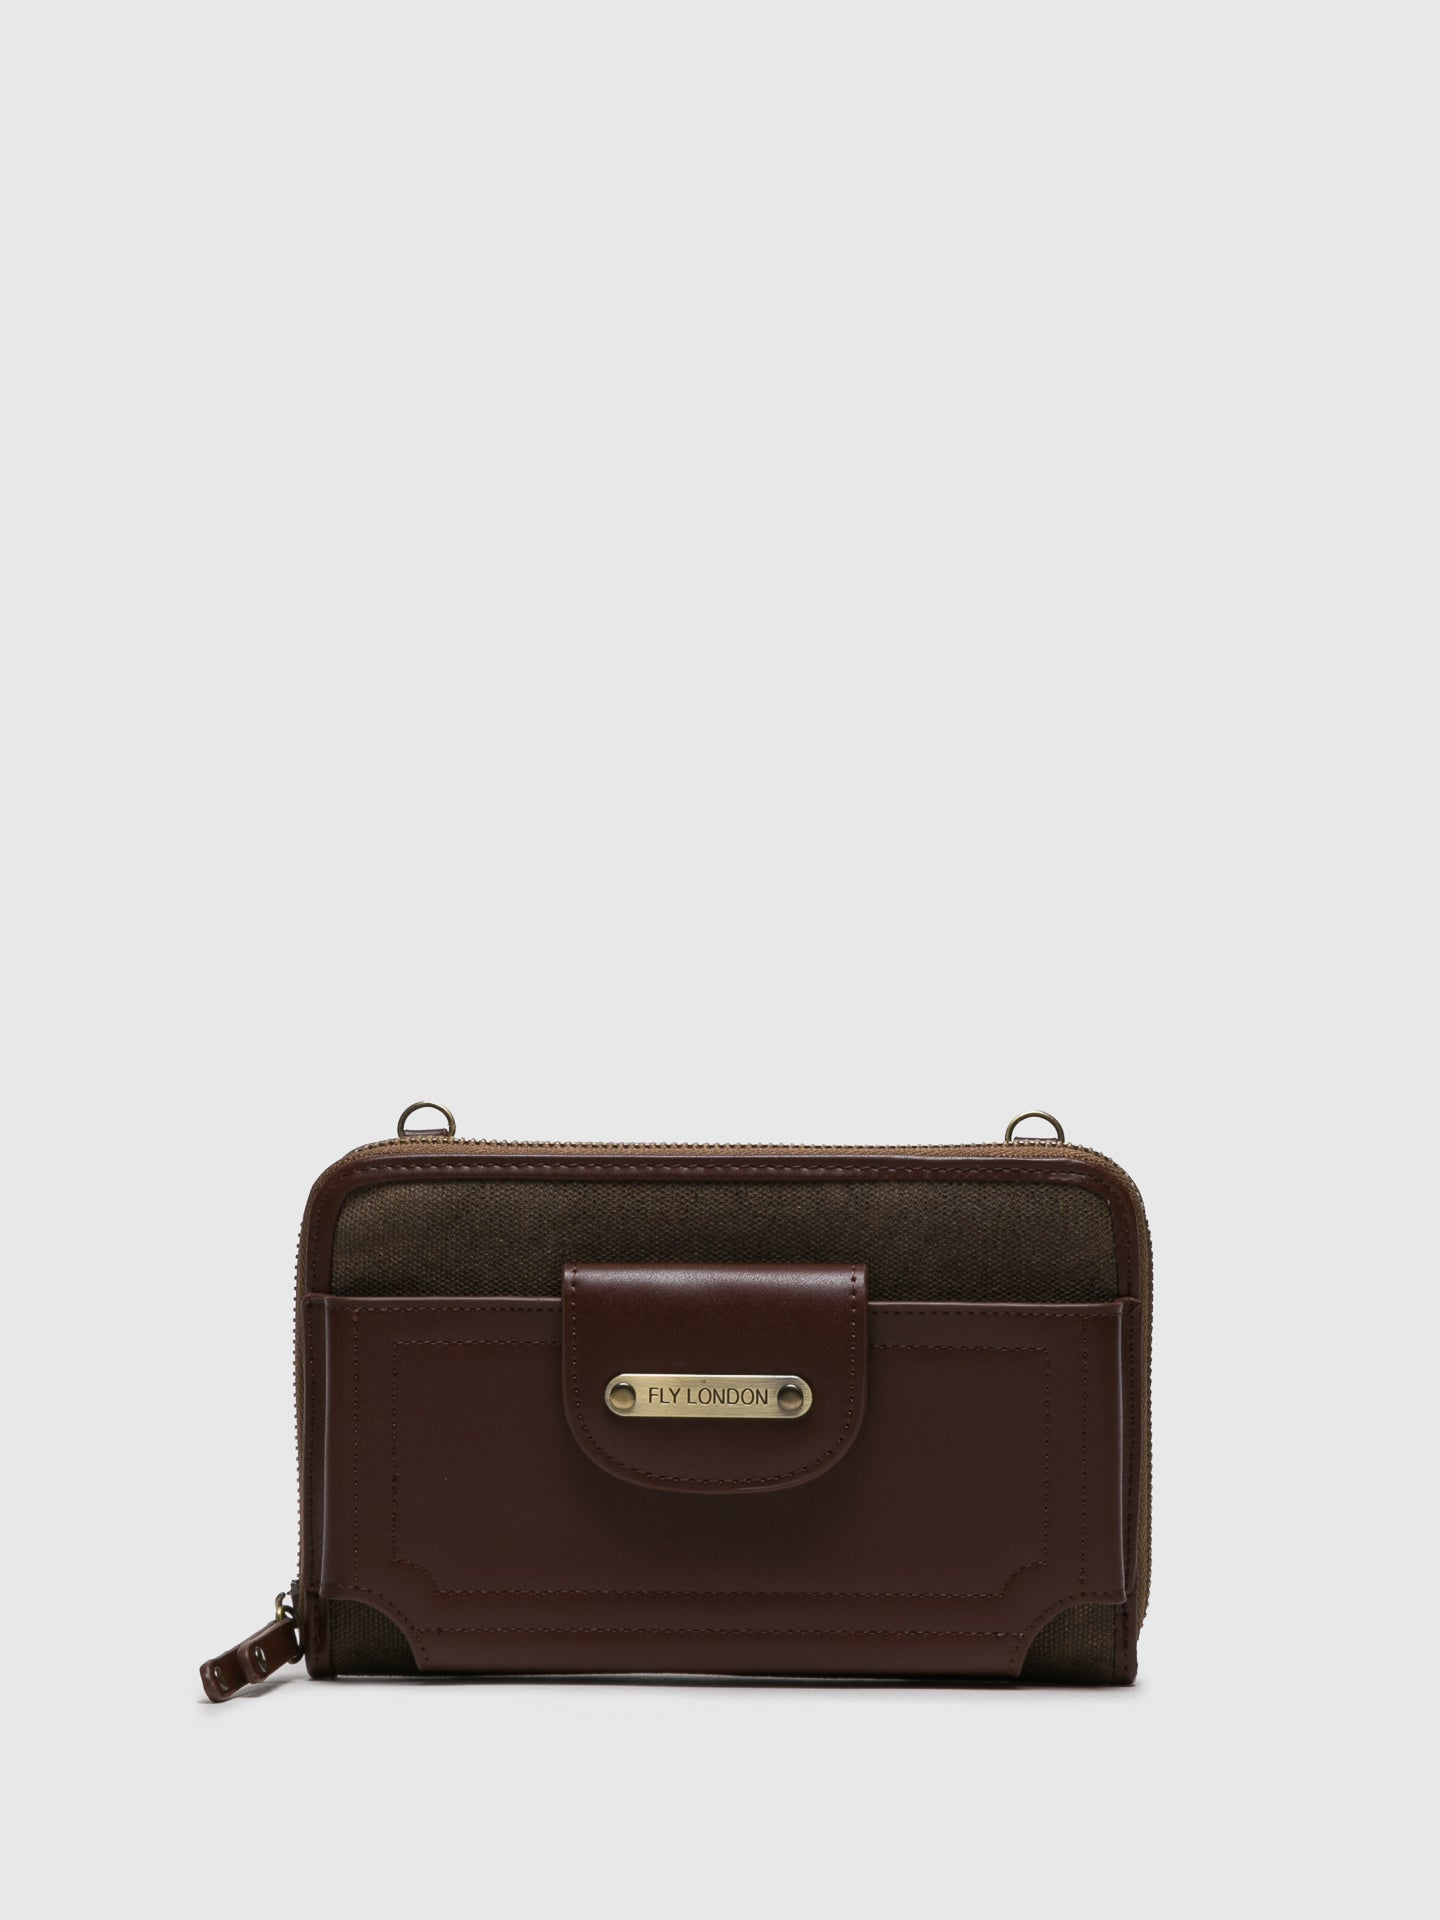 Fly London Brown Mini Bag